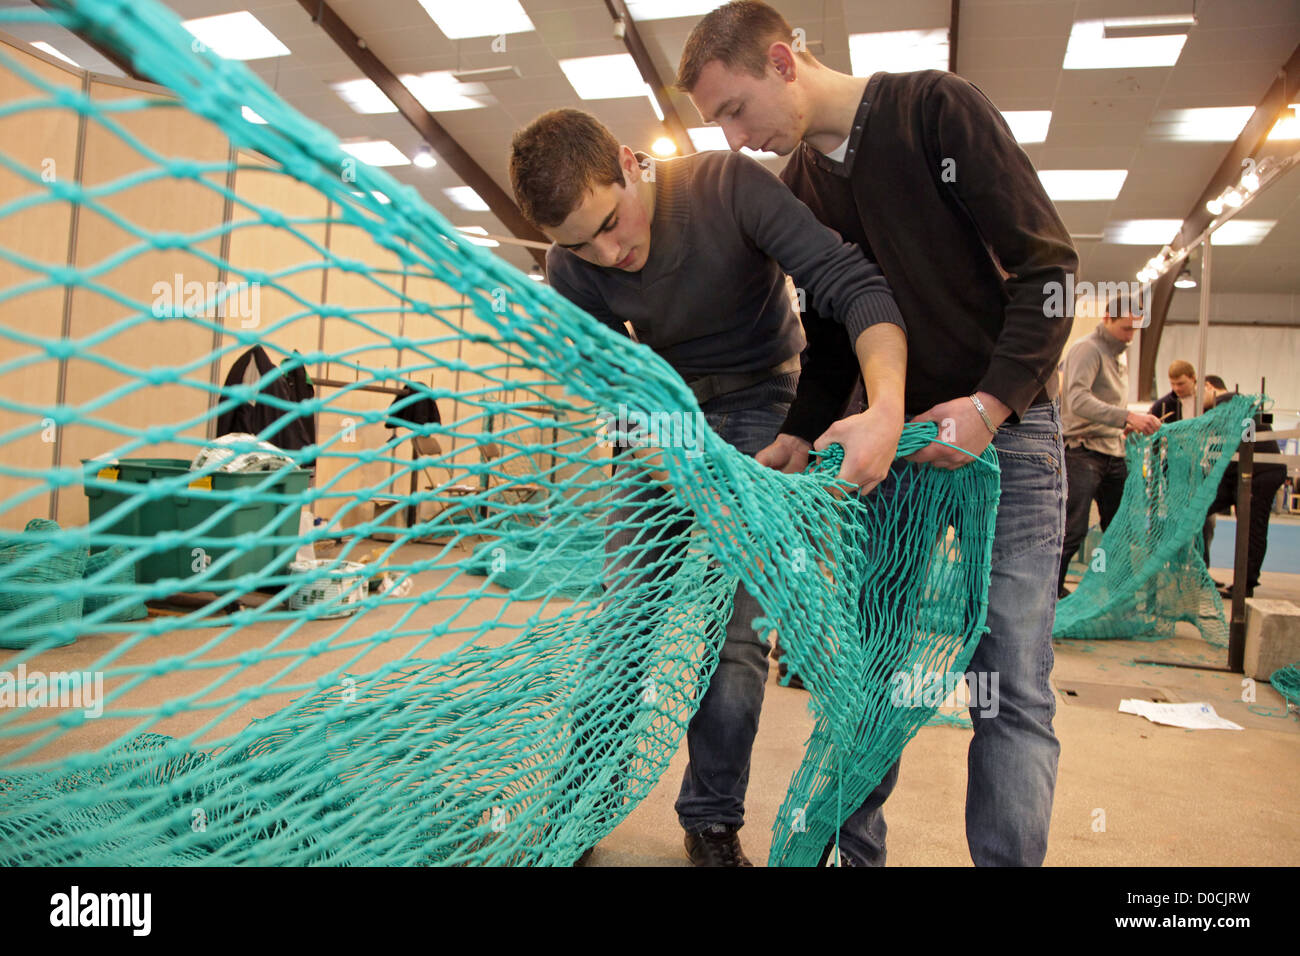 STUDENT IN TRAWL NET MAKING SEA PROFESSIONS 42ND OLYMPIADES DES METIERS IN BRITTANY RENNES FRANCE - Stock Image